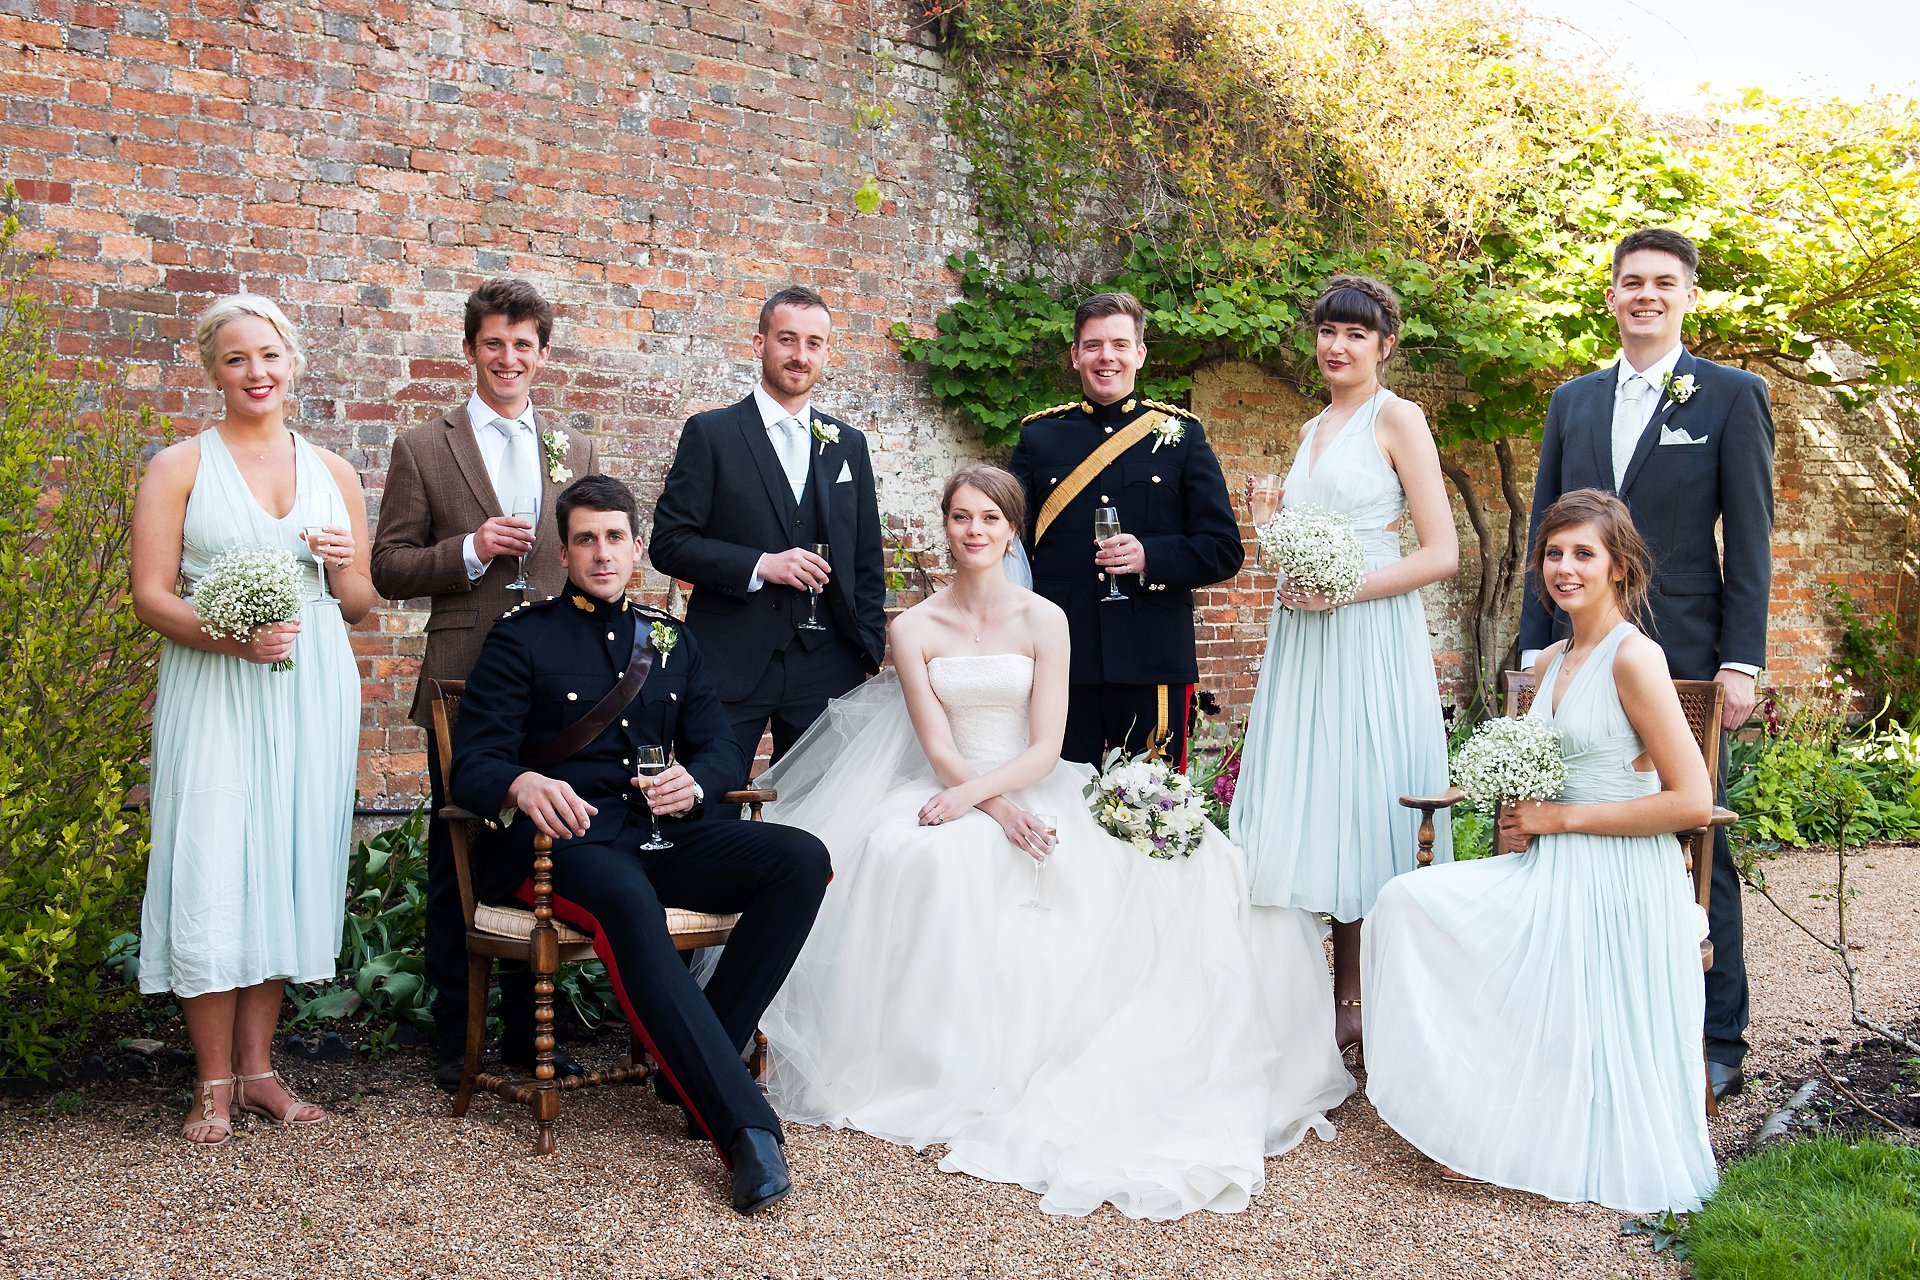 Bride and groom and their bridesmaids, best man, and ushers at Starborough Manor a Kent wedding venue set in beautiful ground just outside Edenbridge and Lingfield in Kent